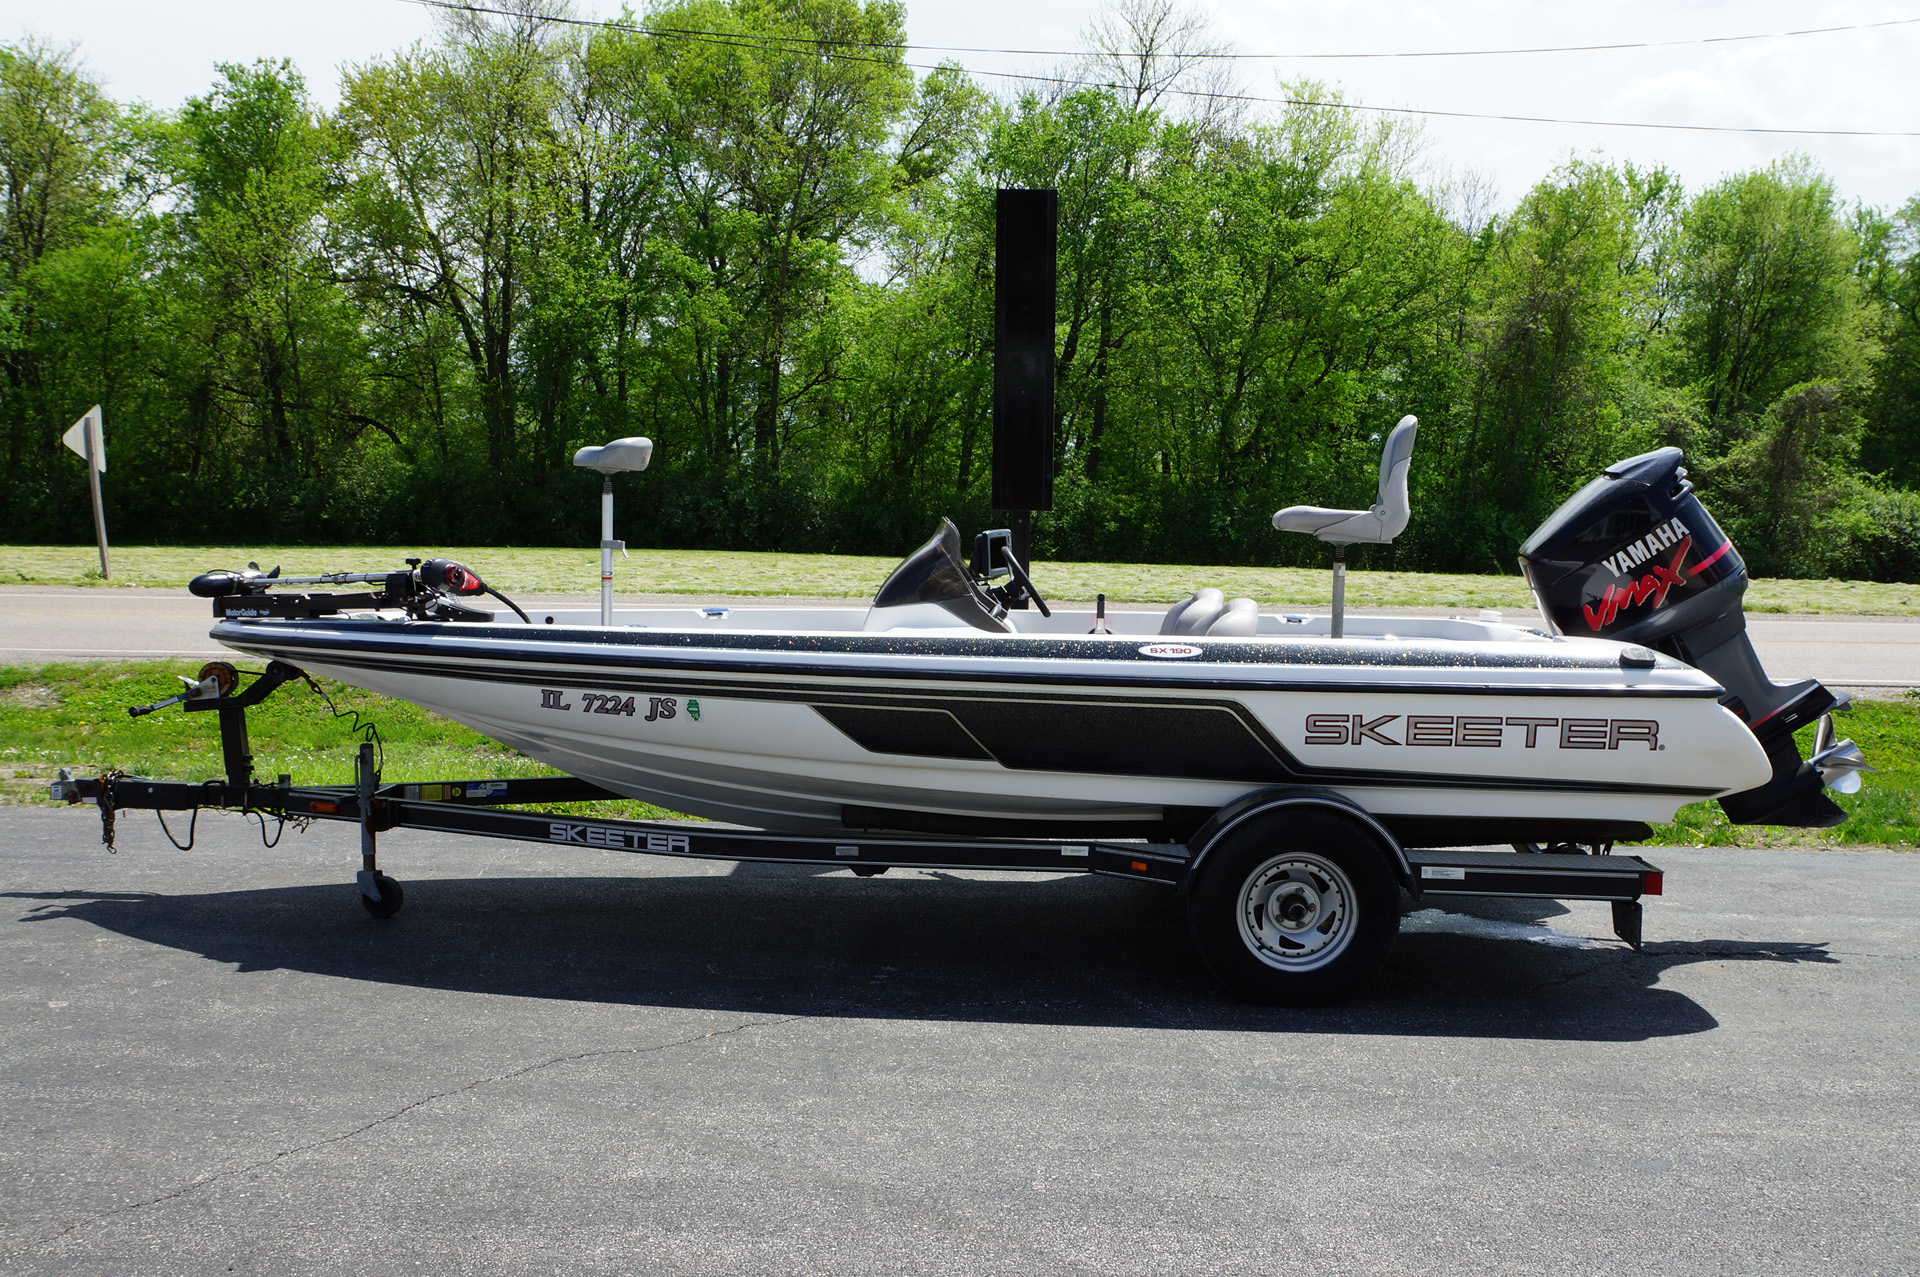 Skeeter new and used boats for sale in illinois for Used yamaha sx190